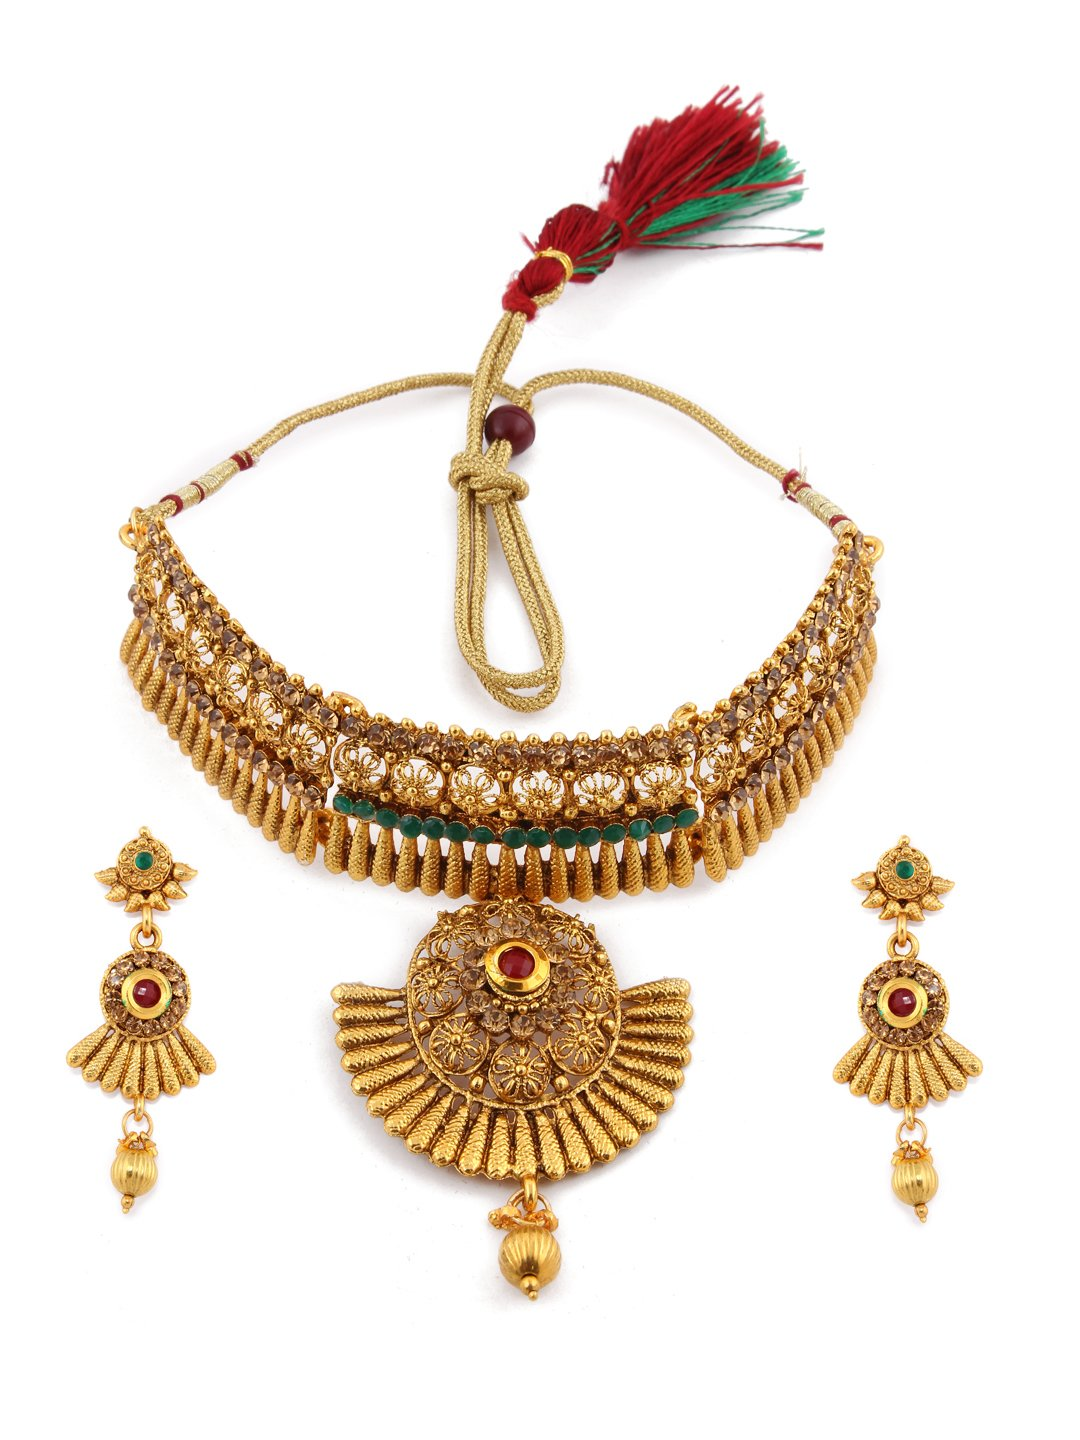 Rubans Gold Toned Traditional Indian Jewelry Set Bollywood Ethnic Wedding Bridal Faux Ruby and Emerald with Rhinestone Choker Necklace Set for Women